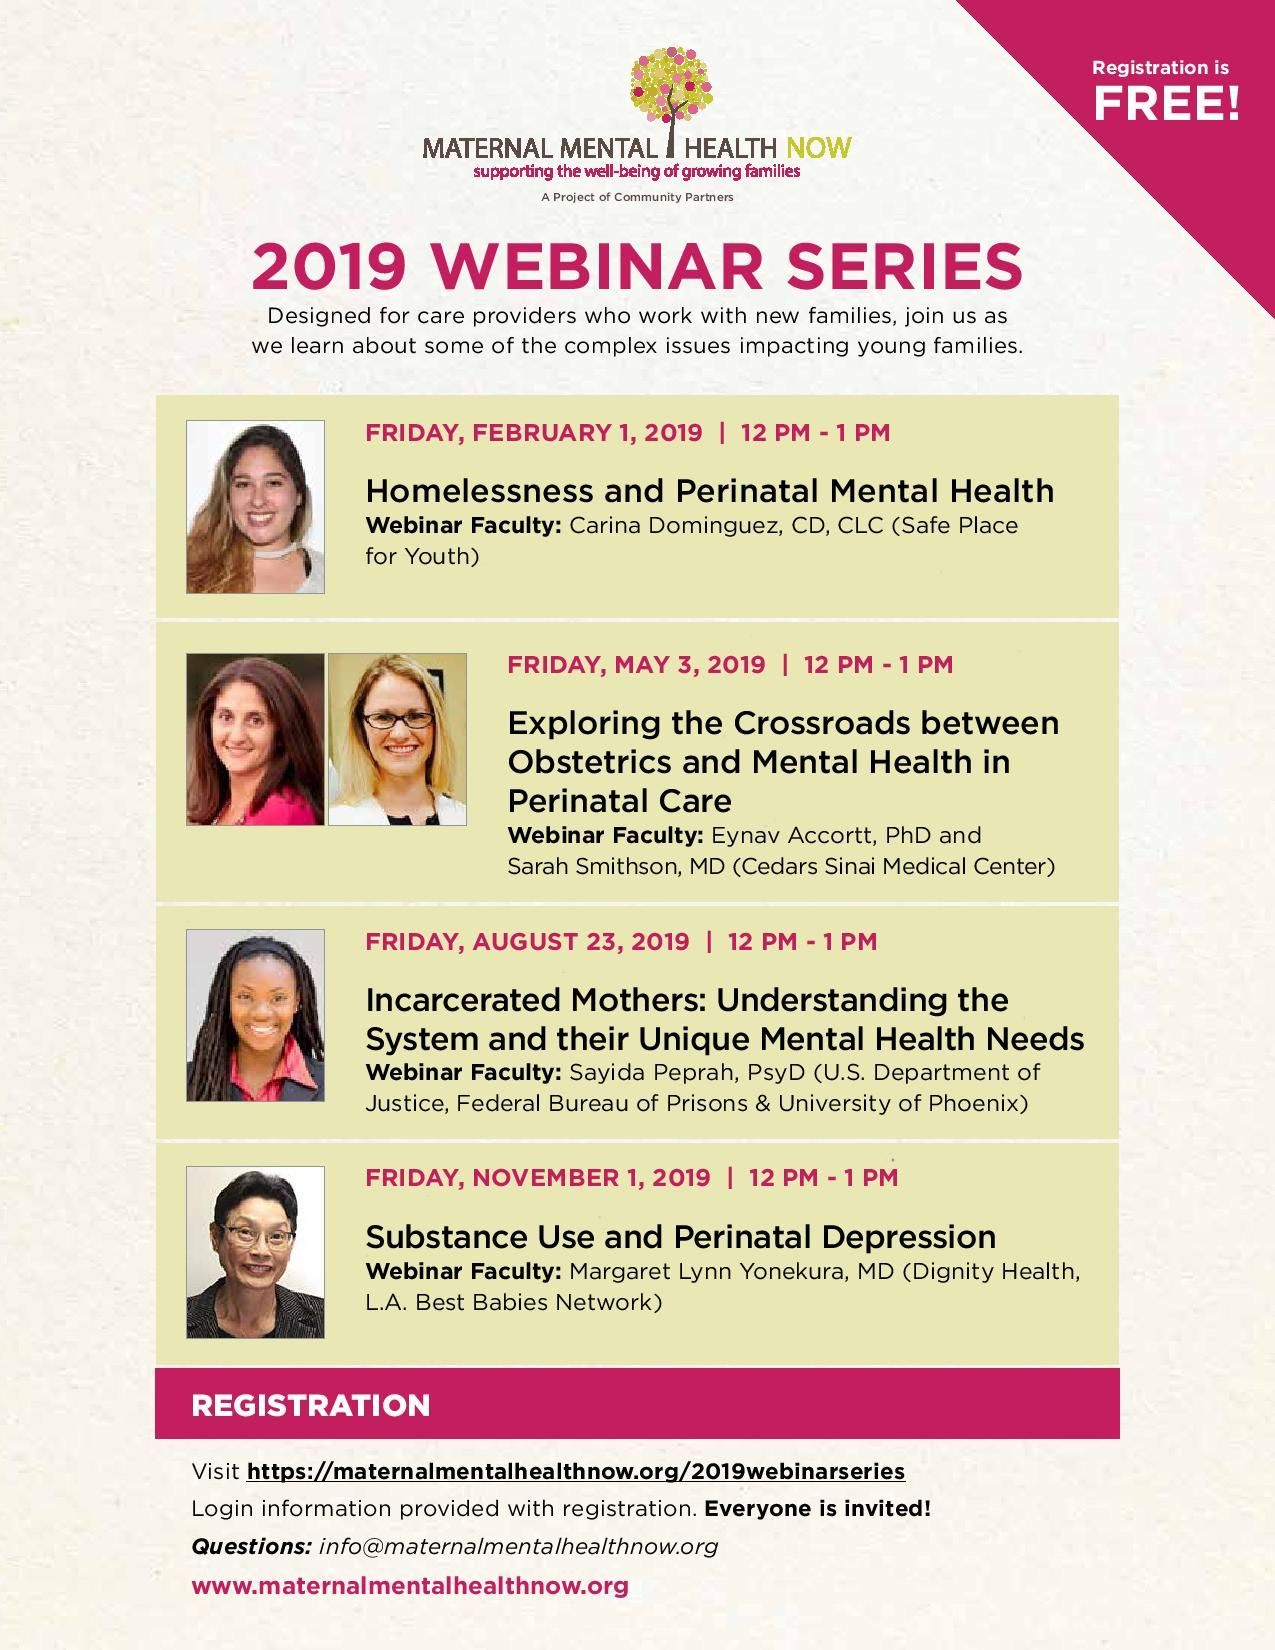 Webinarseries2019 flyer | Doula Resources | Health, Doula